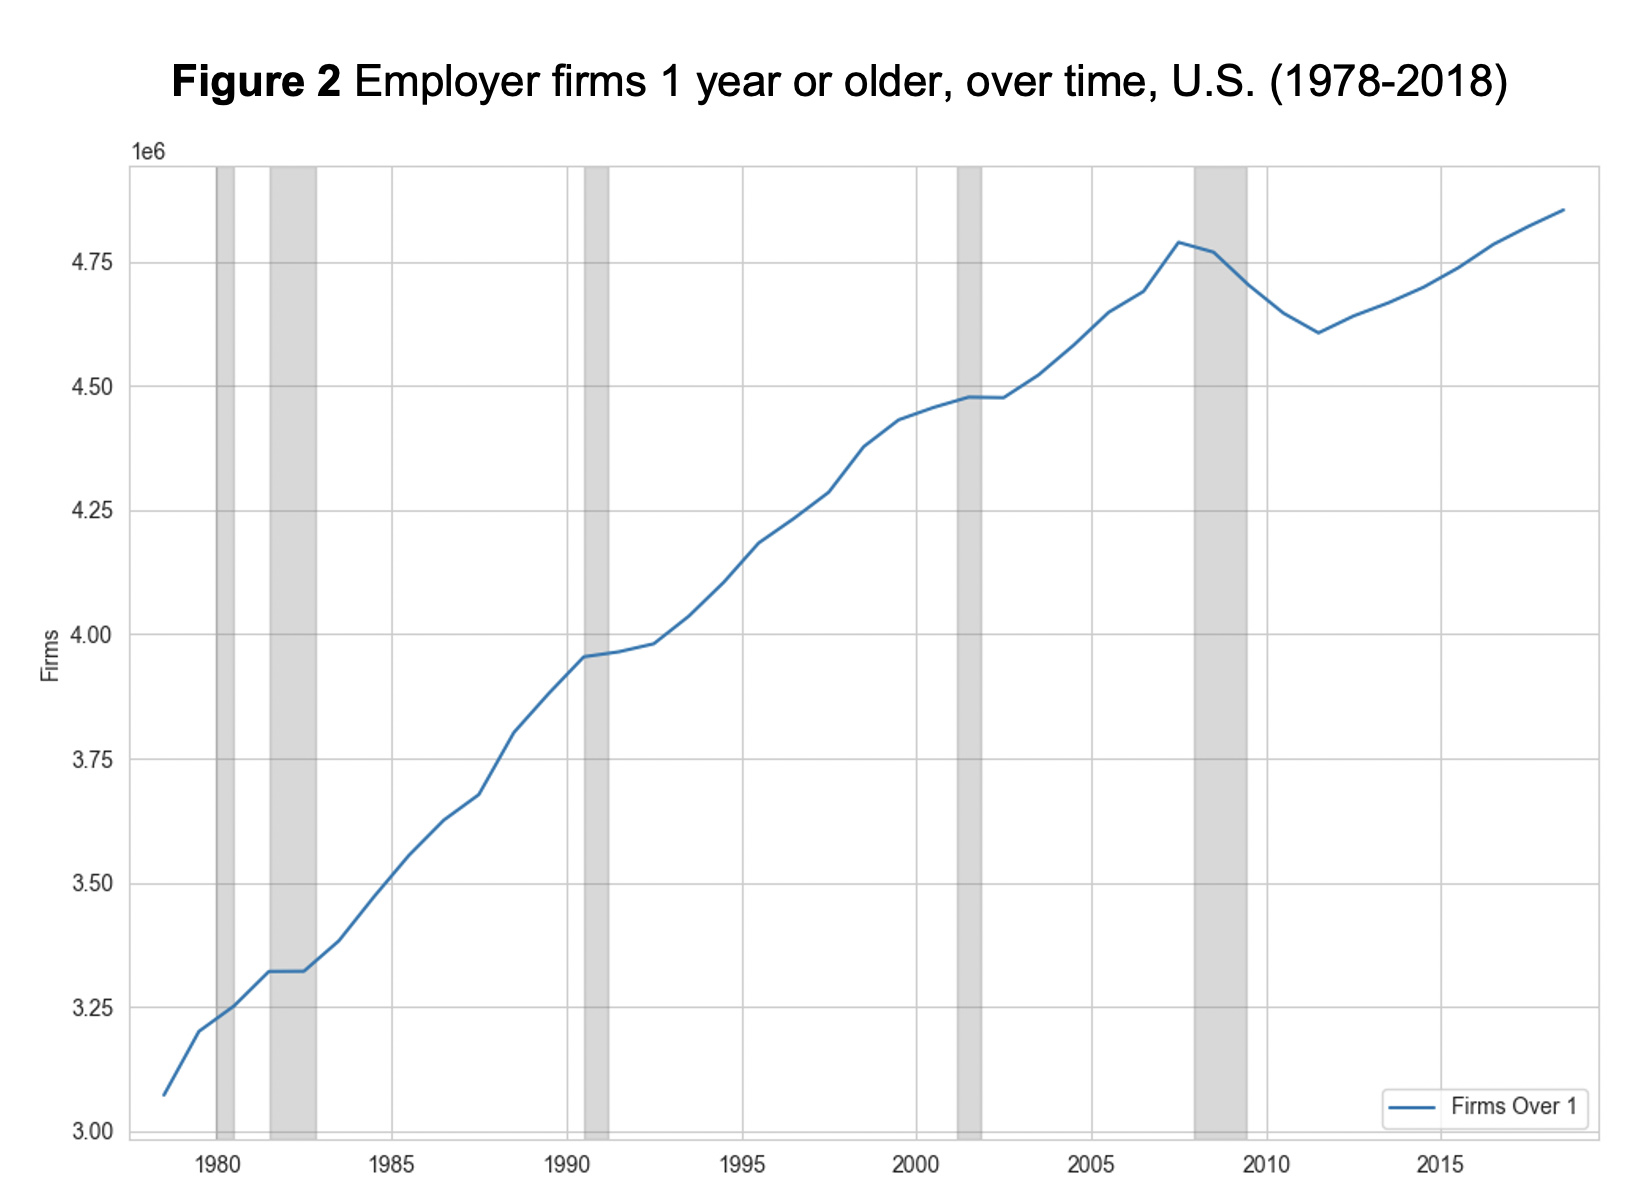 Figure 2: Employer firms 1 year or older, over time, U.S. (1978-2018)